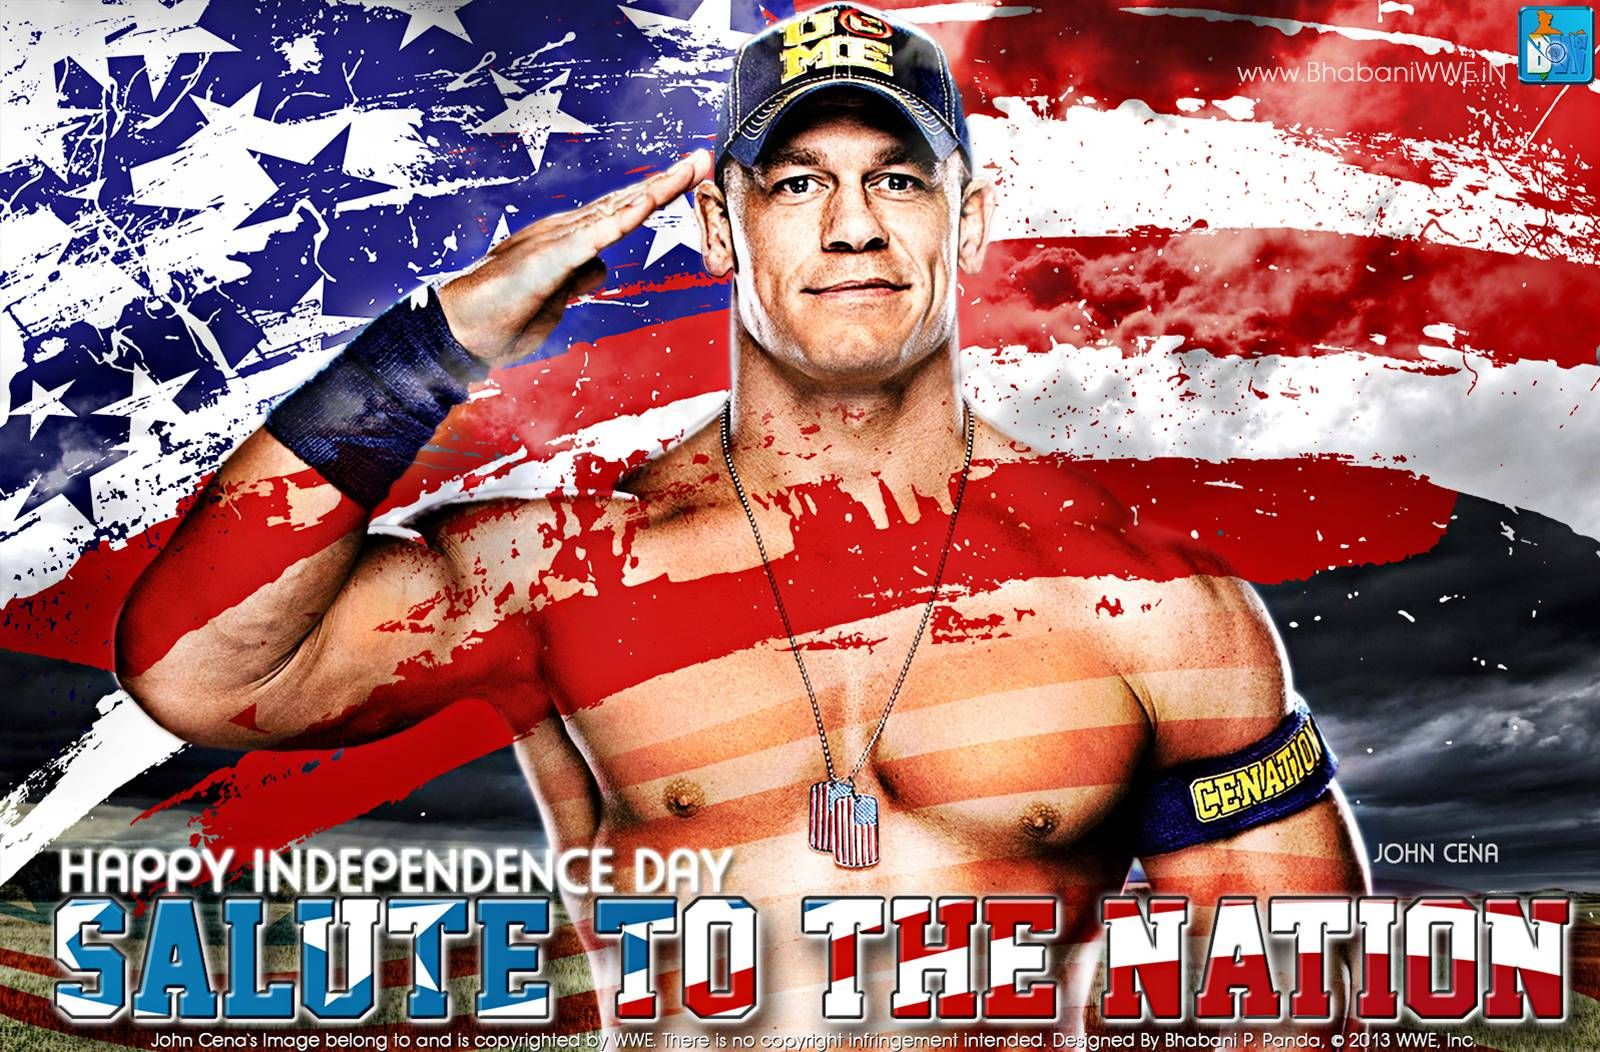 Wwe john cena wallpapers hd wallpaper 19201080 wwe john cena images wwe john cena wallpapers hd wallpaper 19201080 wwe john cena images wallpapers 54 voltagebd Images